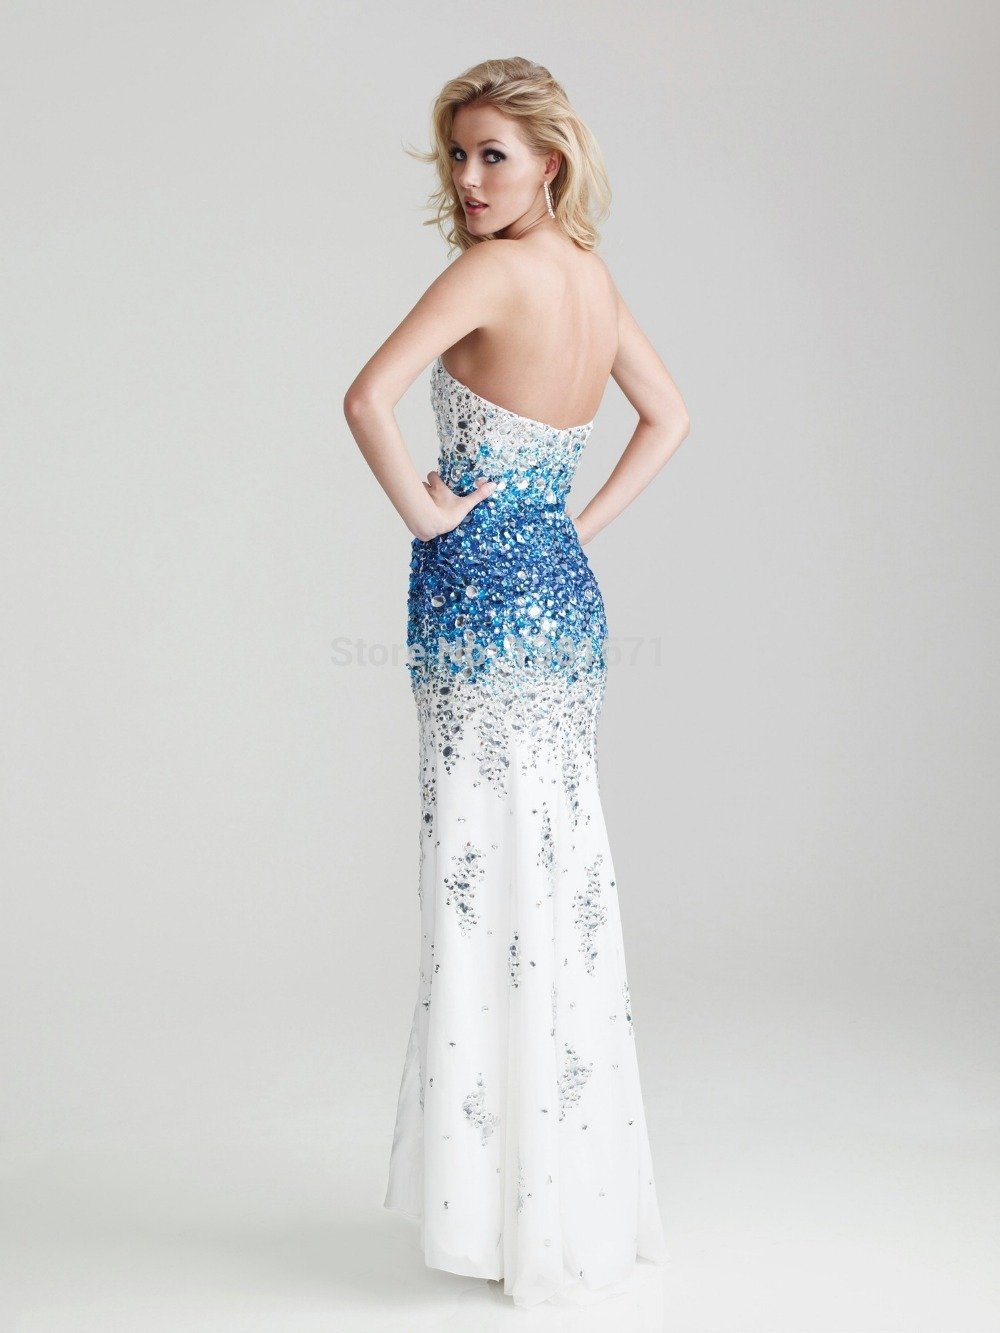 Aliexpress.com : Buy Free Shipping  New Arrival 100% Shining Crystal Handwork High End Occasion Elegance Evening Dress from Reliable dress skull suppliers on Aojia Top Evening Dress